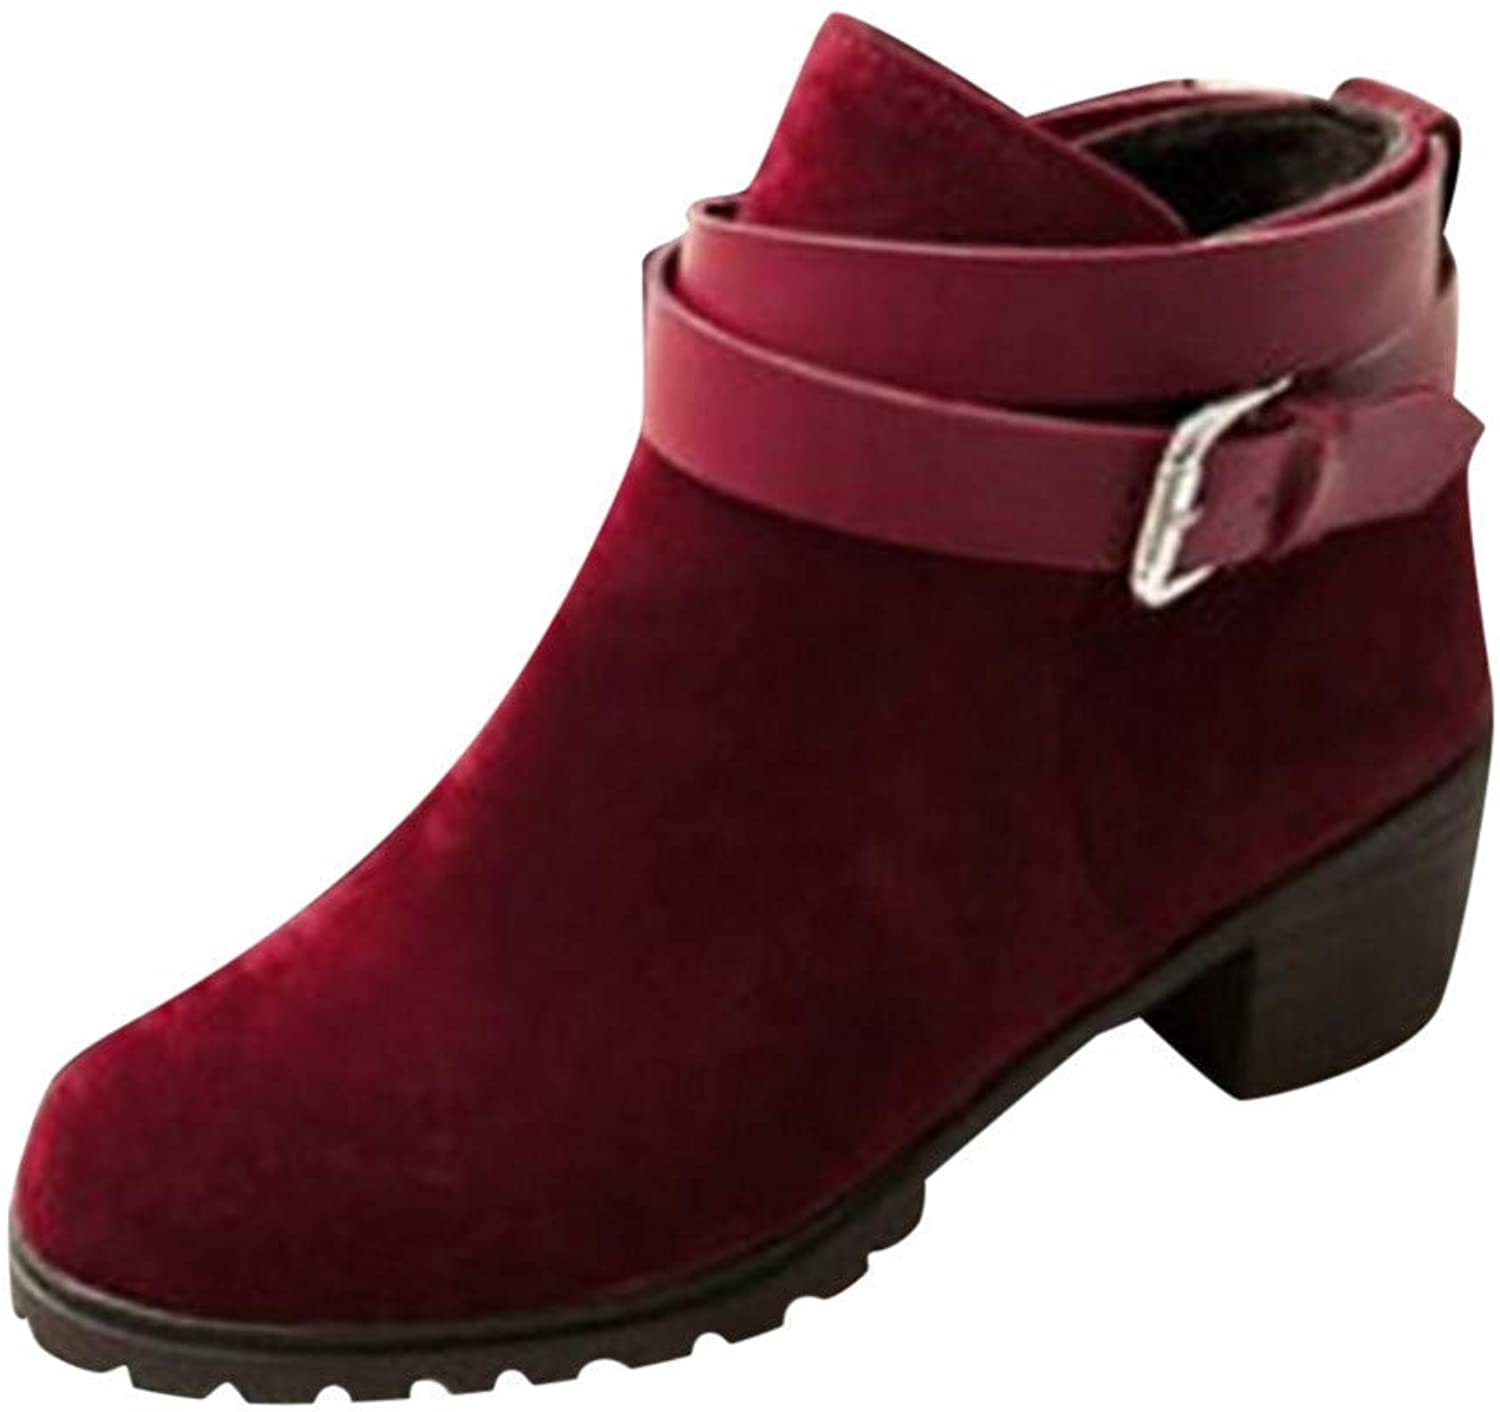 JaHGDU Fashion Women's Short Knuckle Boots Buckle Strap Mid Heel Winter Roman shoes Casual Solid color Red for Womens